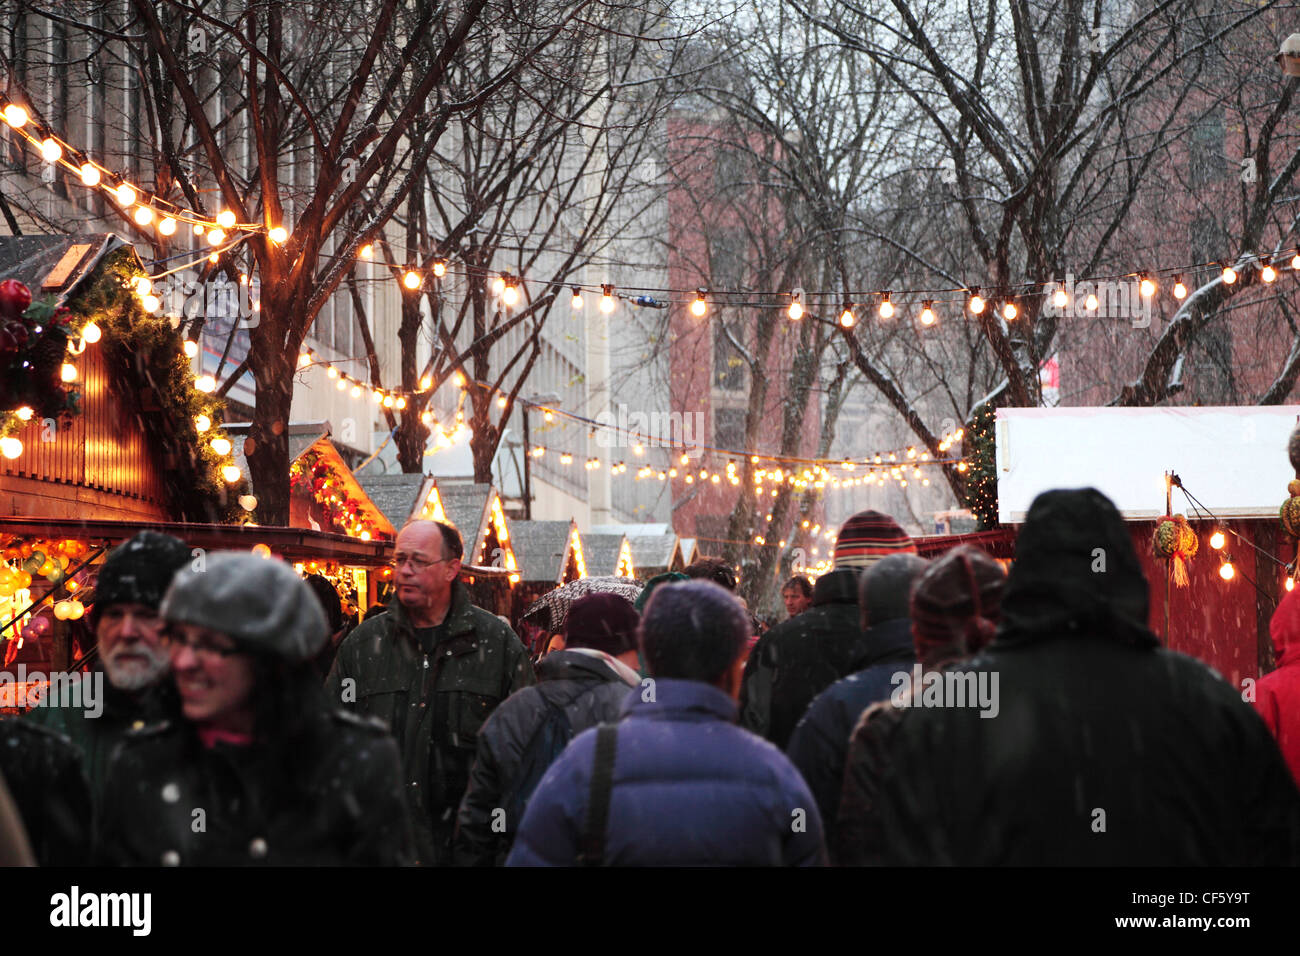 People shopping at the Christmas Market in Manchester on a cold Winter day. - Stock Image